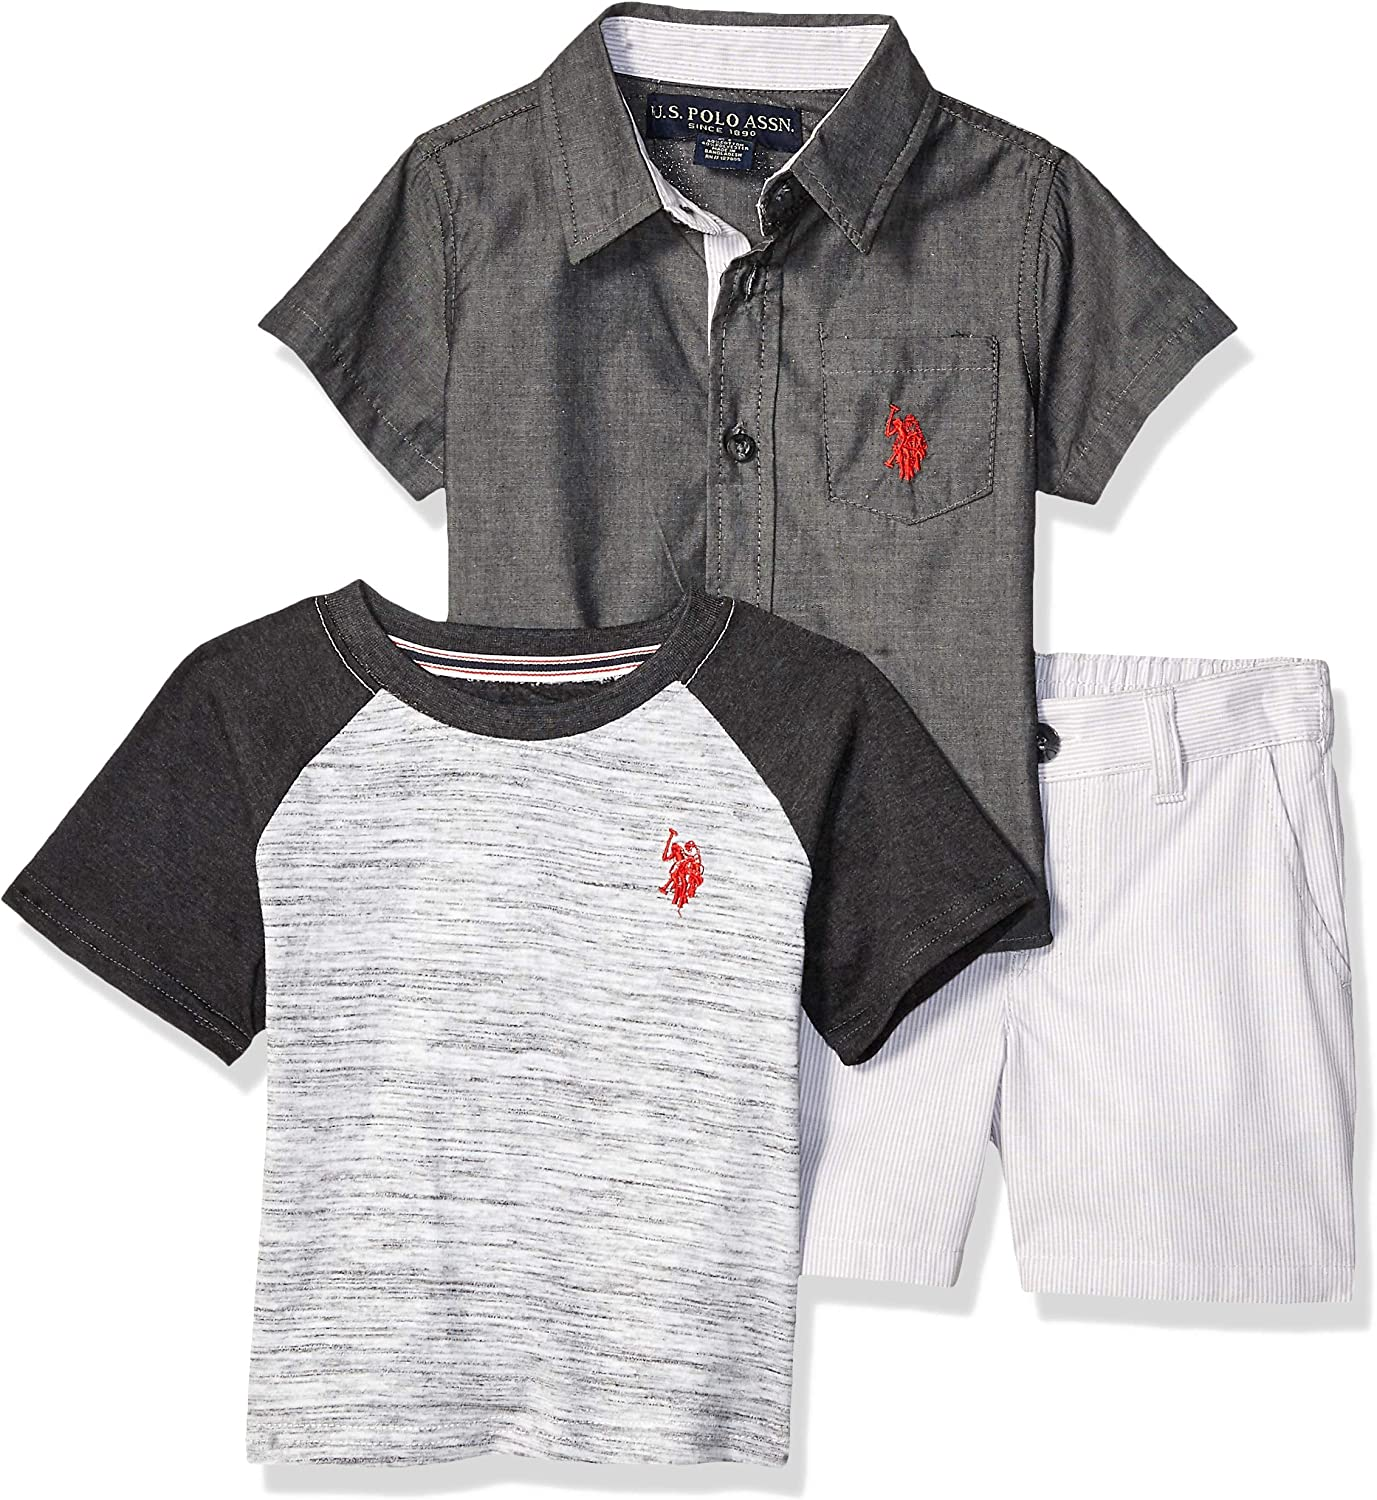 U.S Polo Assn 3 Pack Boys Short Sleeve Fashion Graphic T-Shirts